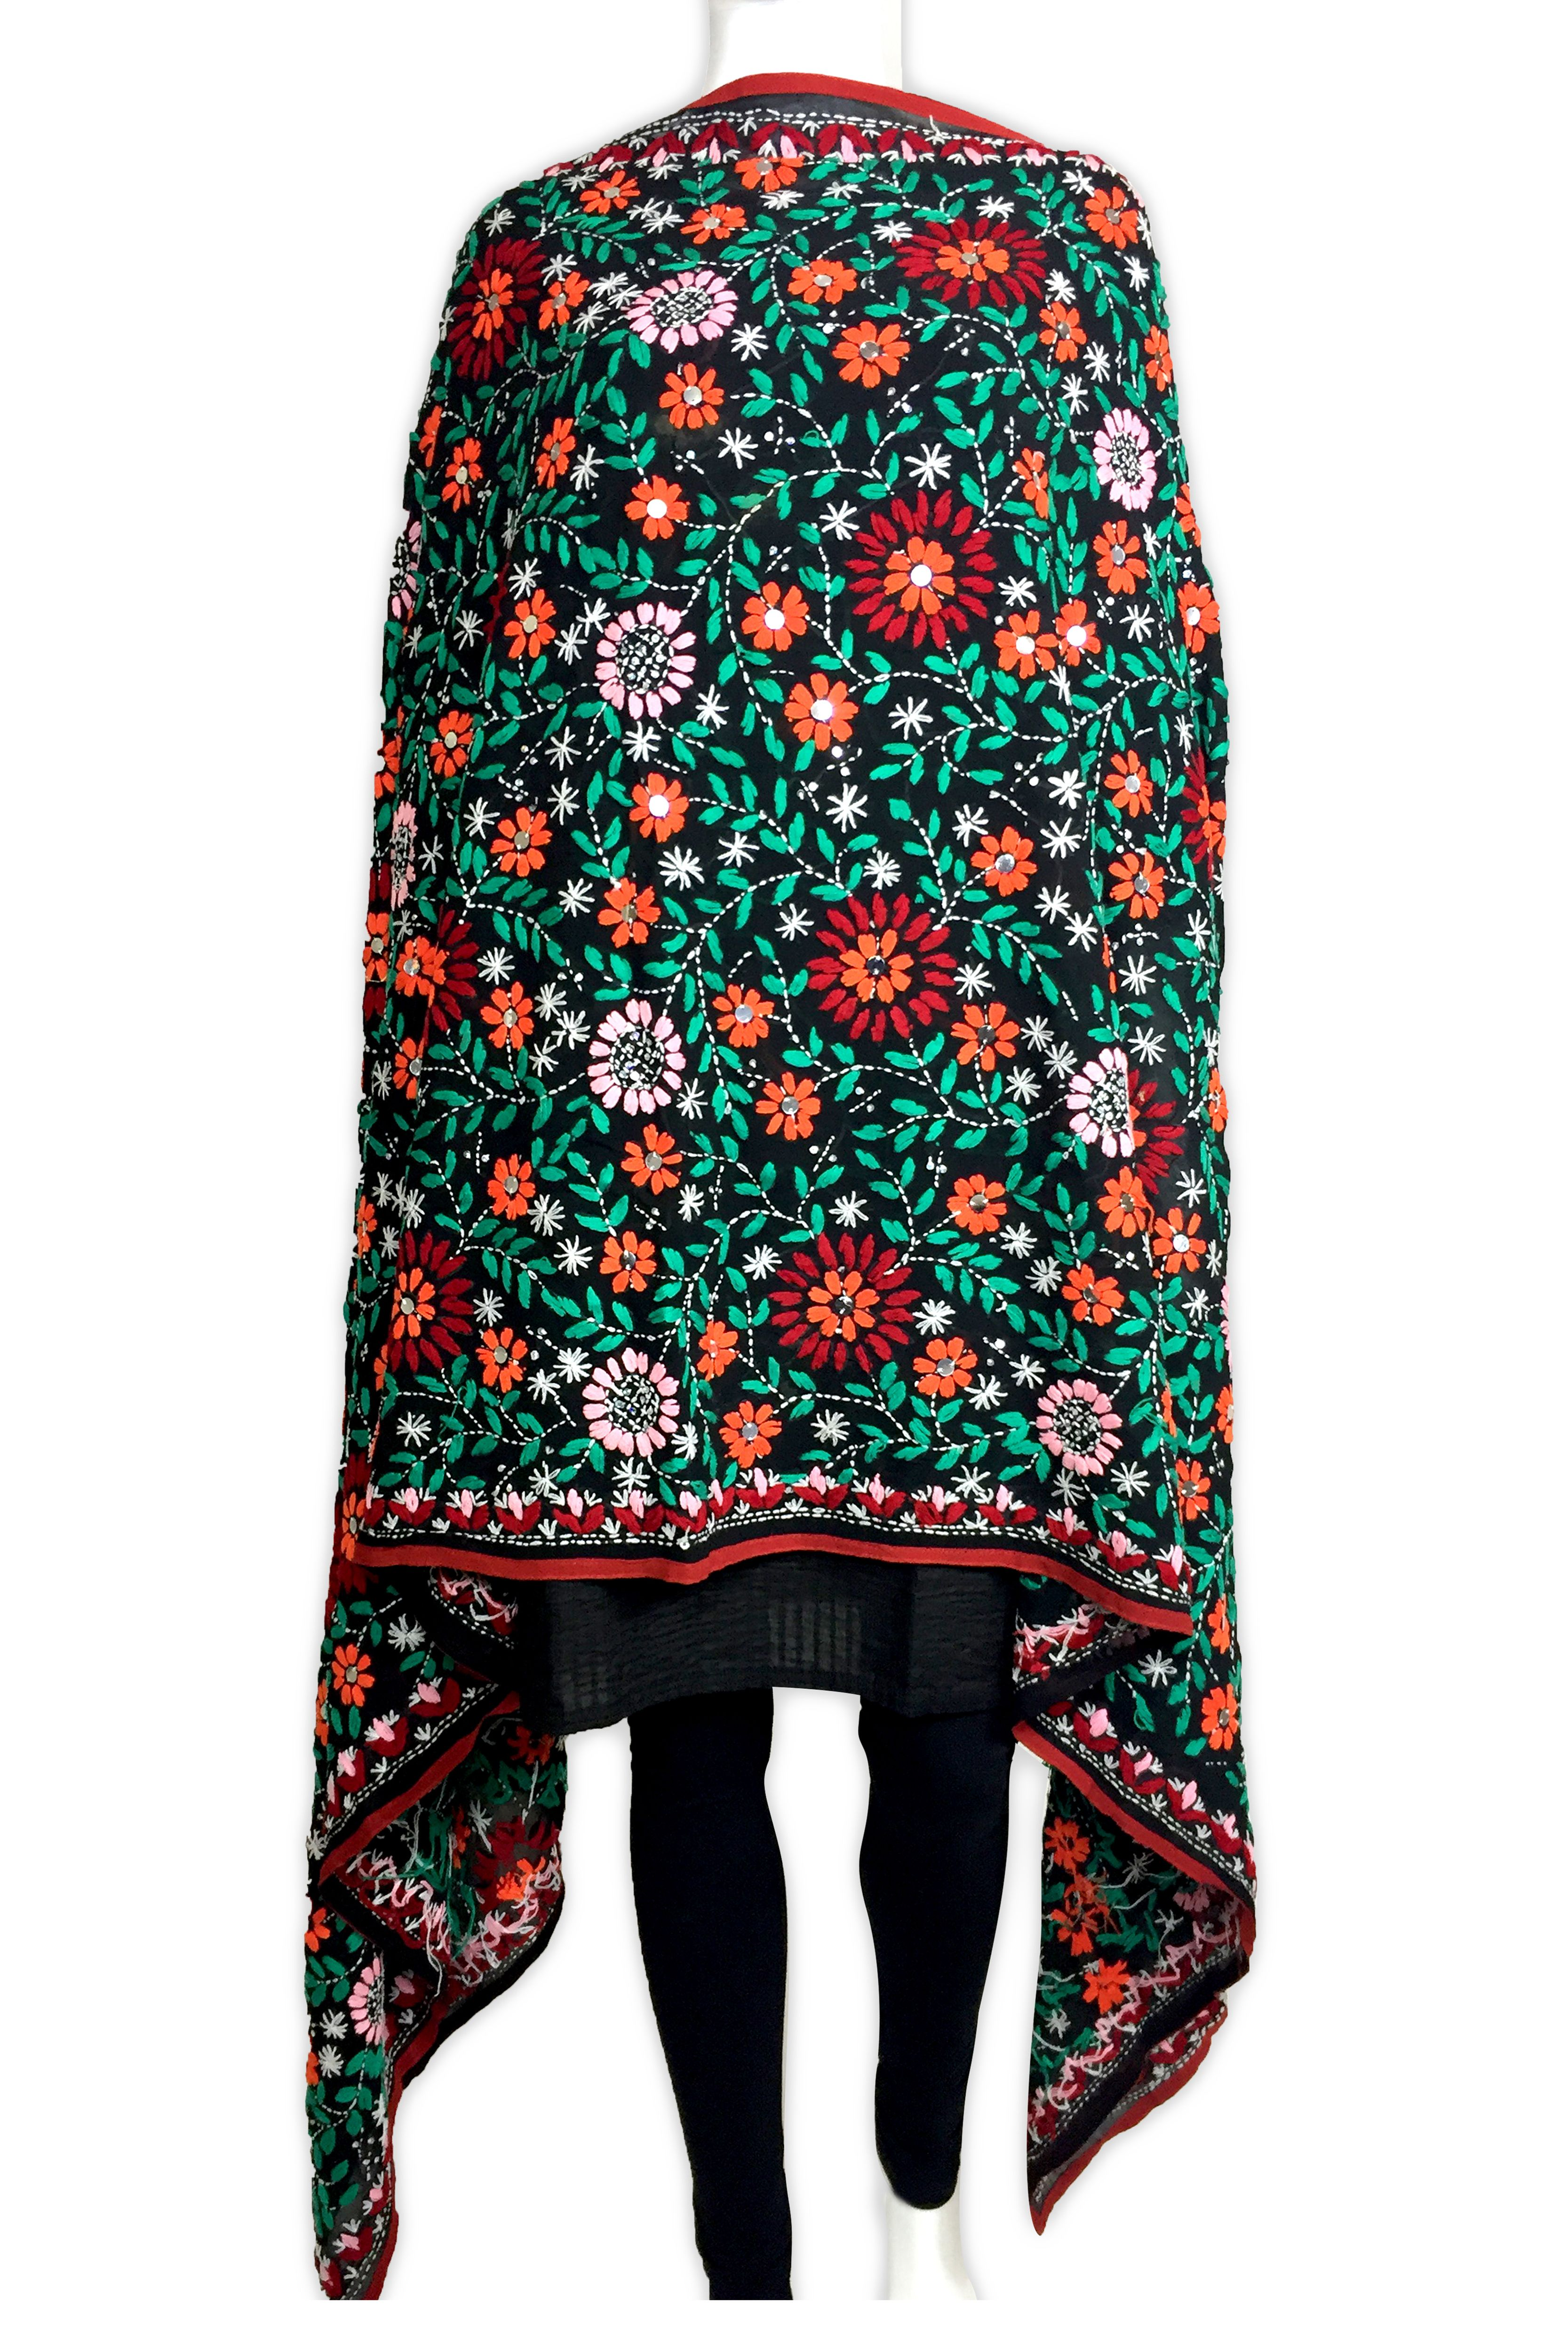 5e3b3cd7ba This beautiful georgette base phulkari dupatta is Hand embroidered with  wool thread and sequins. Ready to Ship from CA shop online  www.pinkphulkari.com